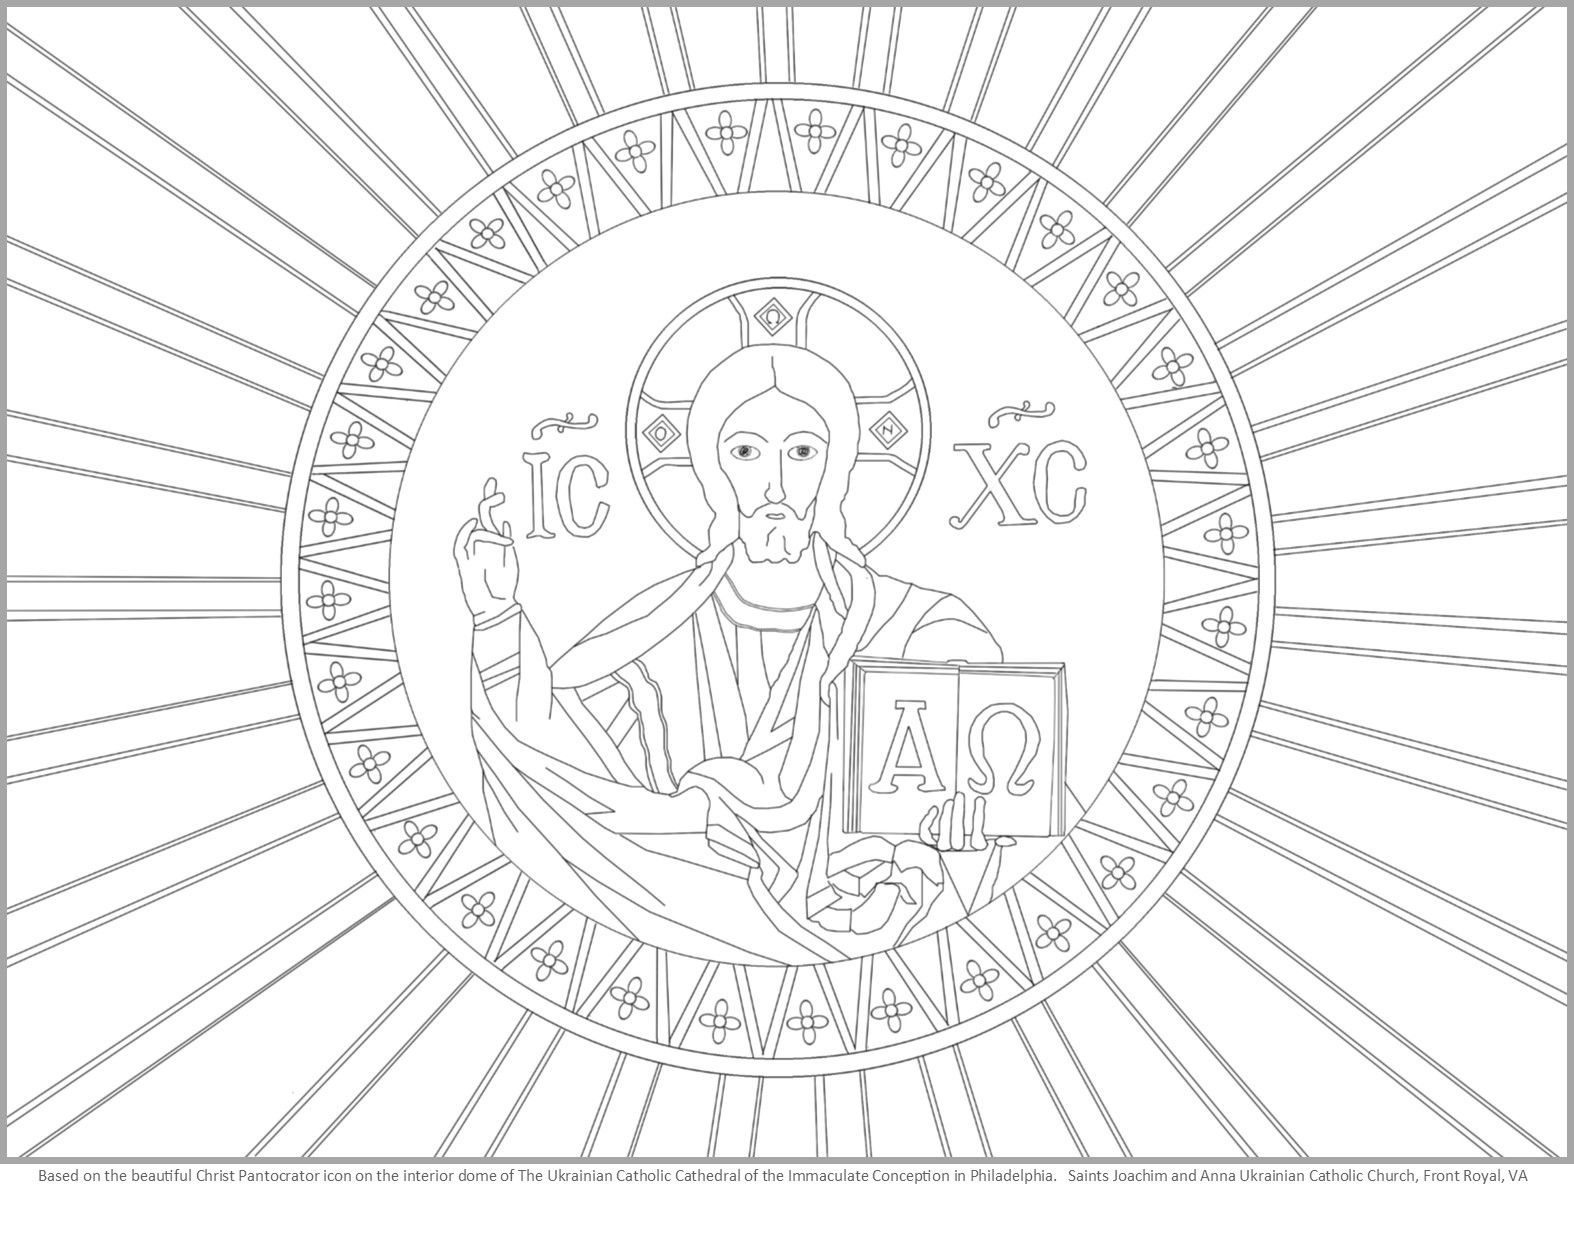 byzantine icon  christ pantocrator based on the icon in